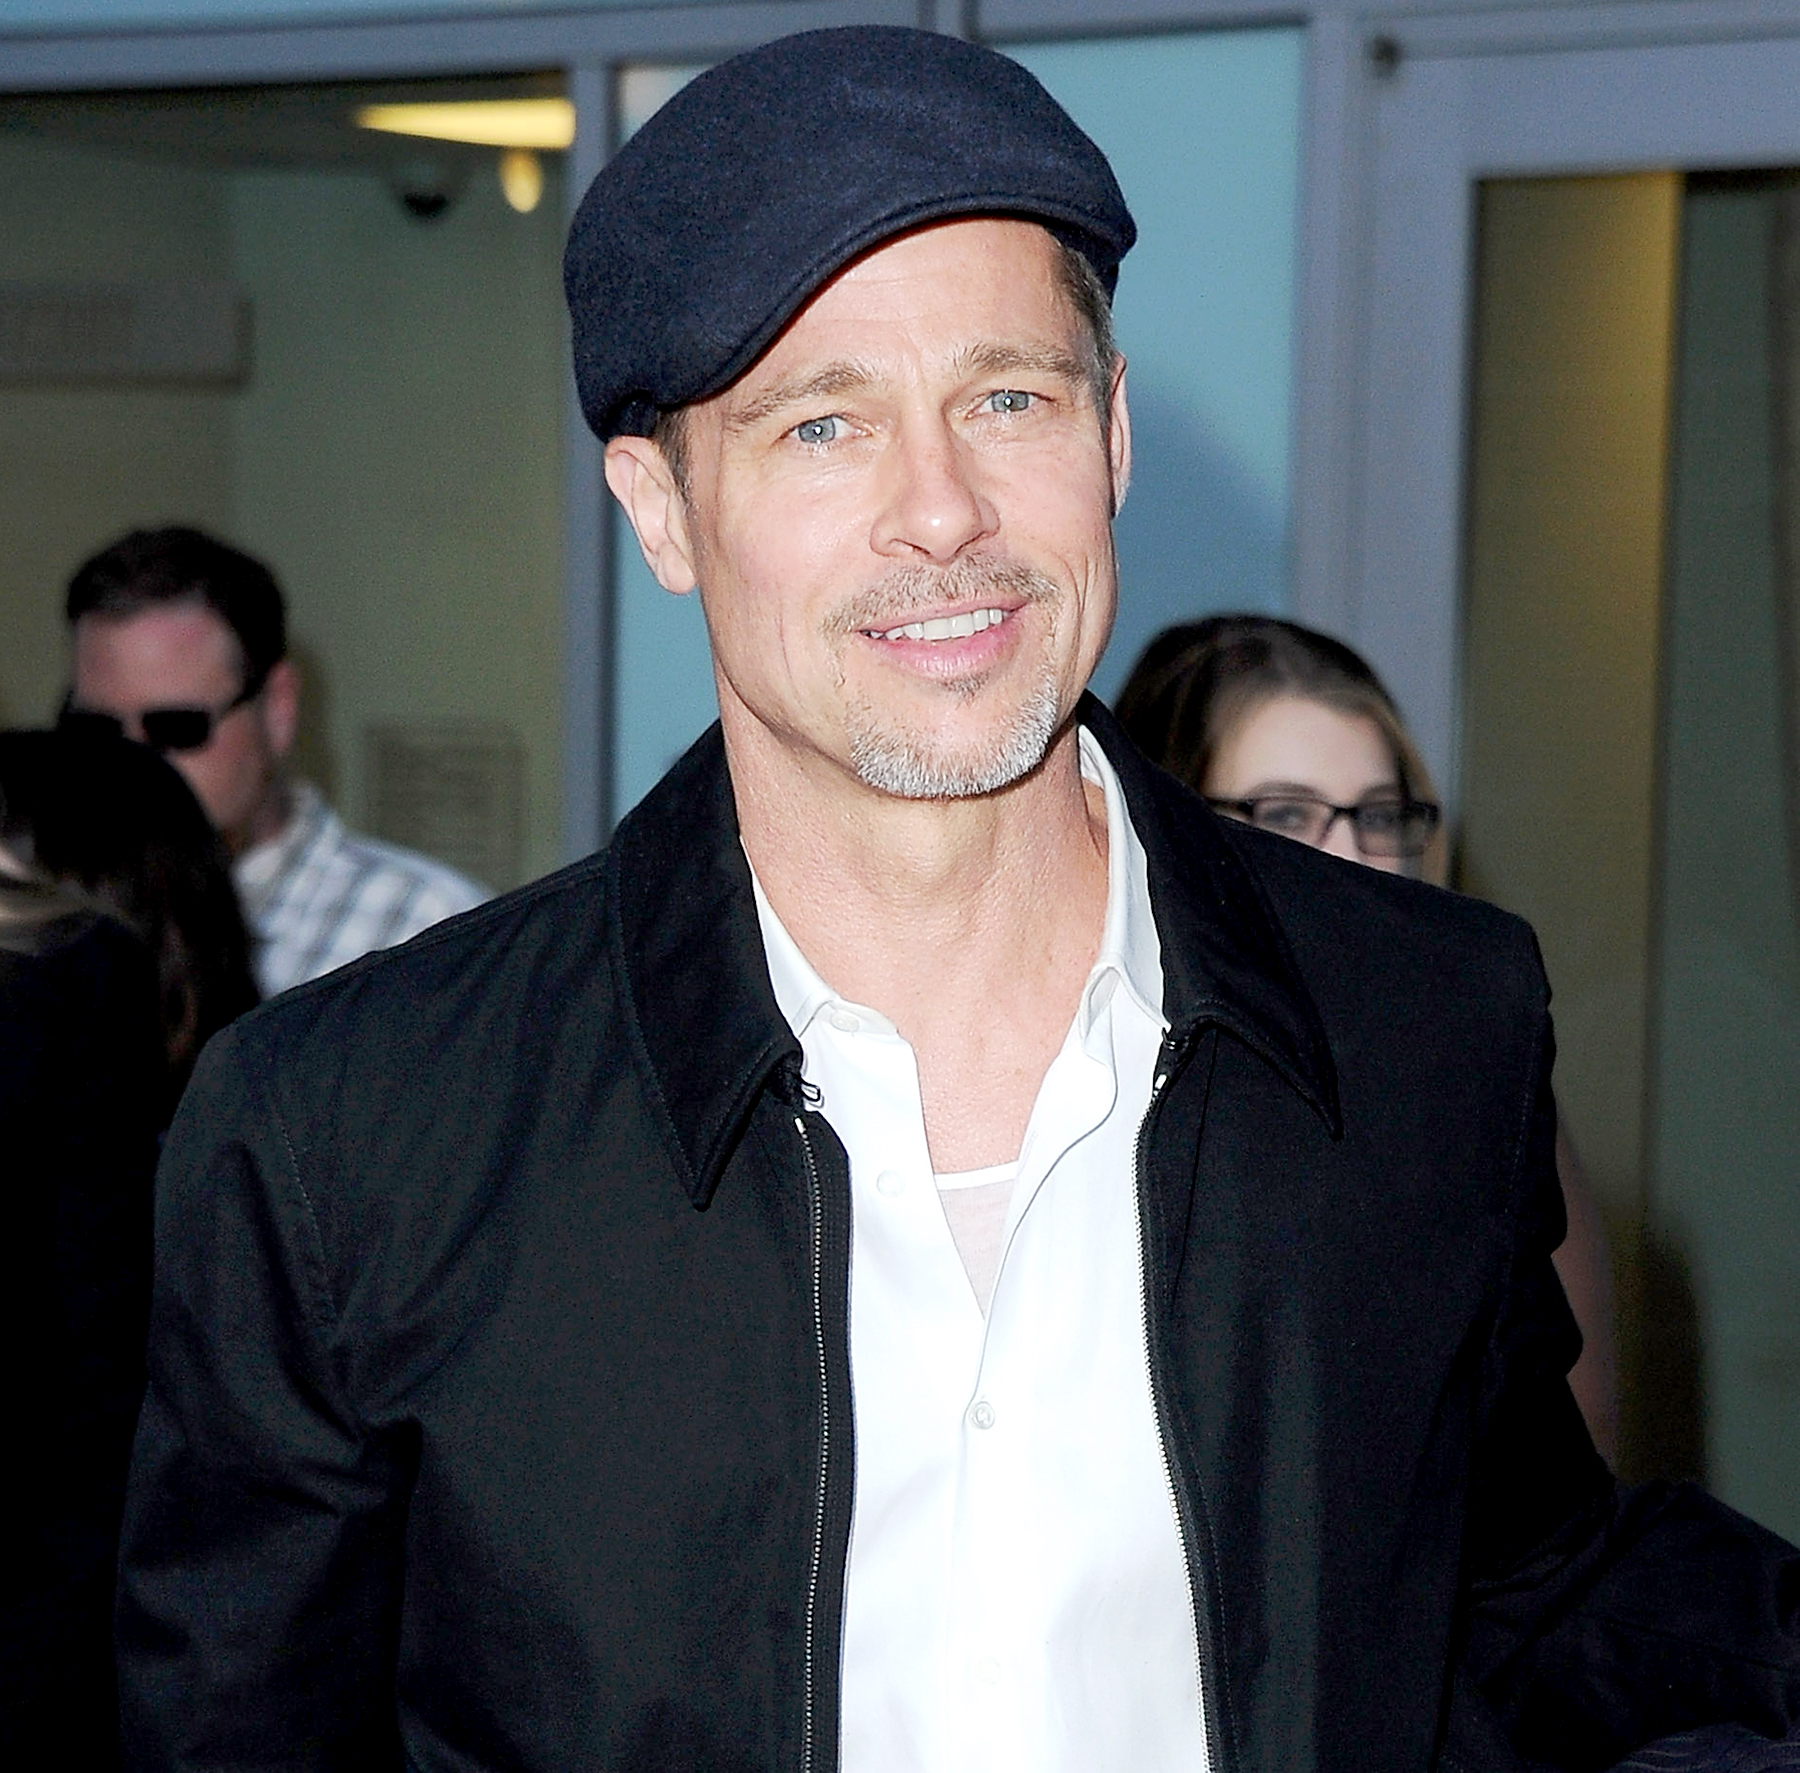 Romance or 'professional friendship'? Brad Pitt spending time with architecture professor